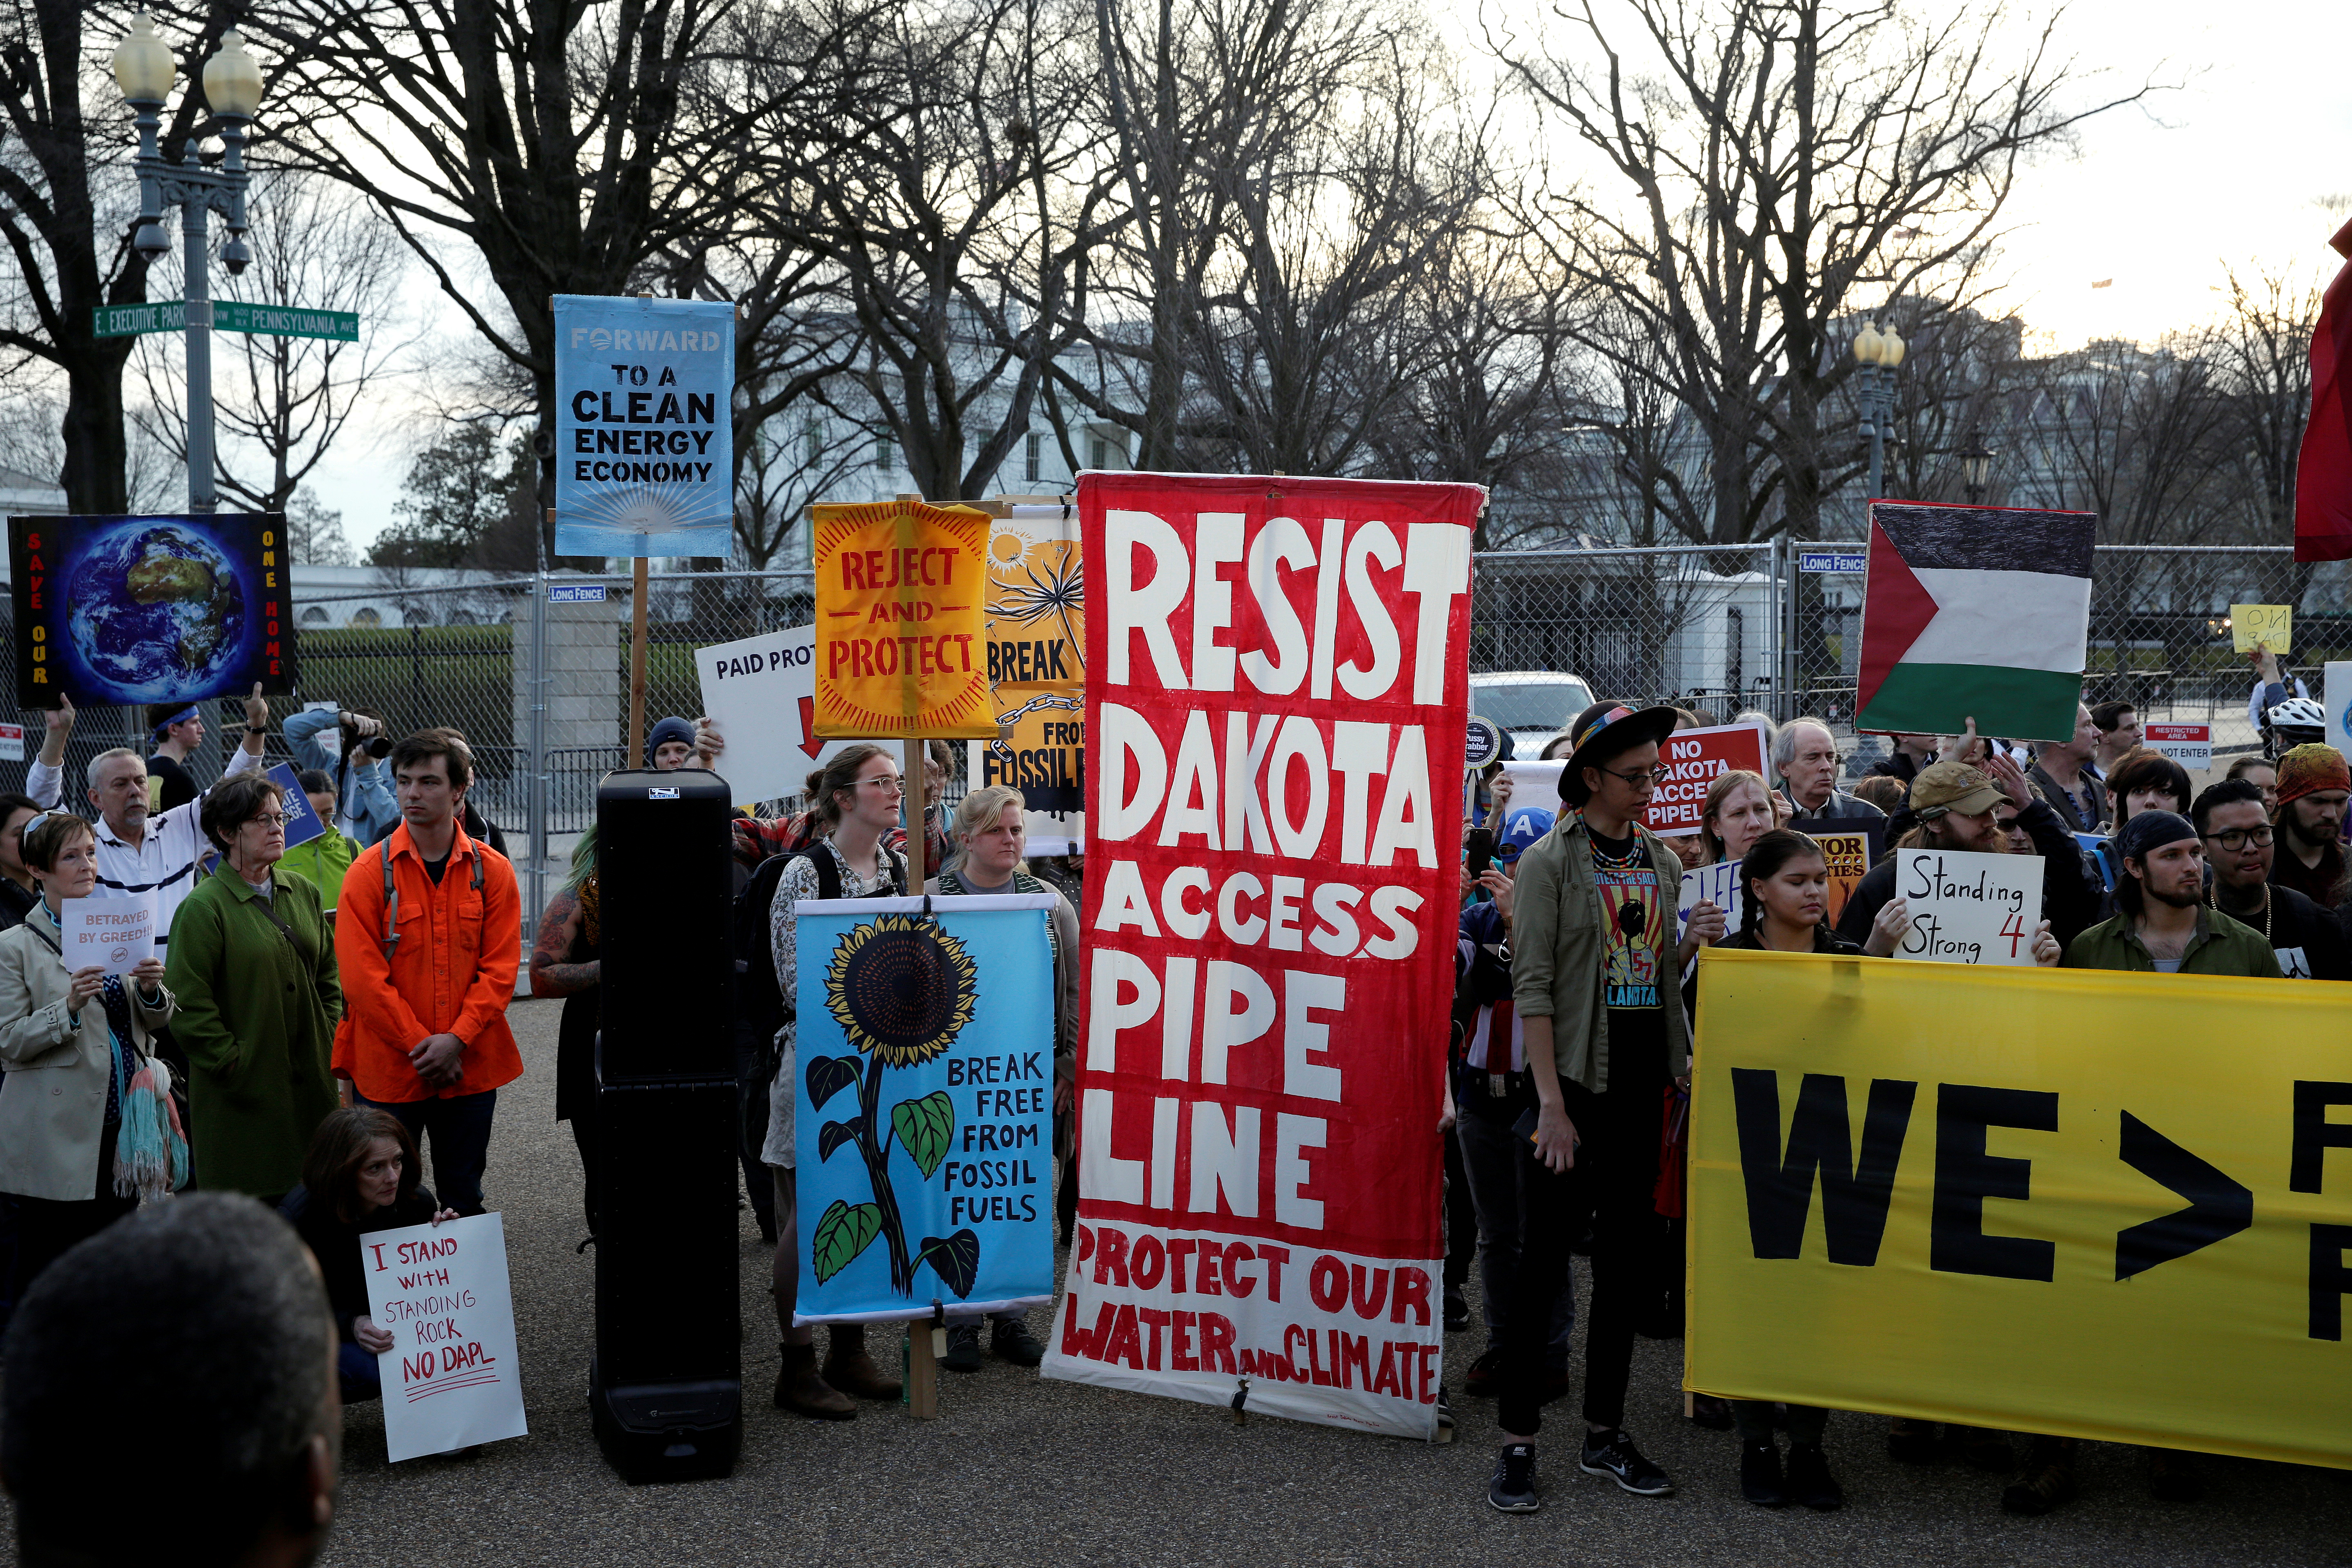 People protest against U.S. President Donald Trump's directive to permit the Dakota Access Pipeline during a demonstration at the White House in Washington, U.S., February 8, 2017. REUTERS/Joshua Roberts